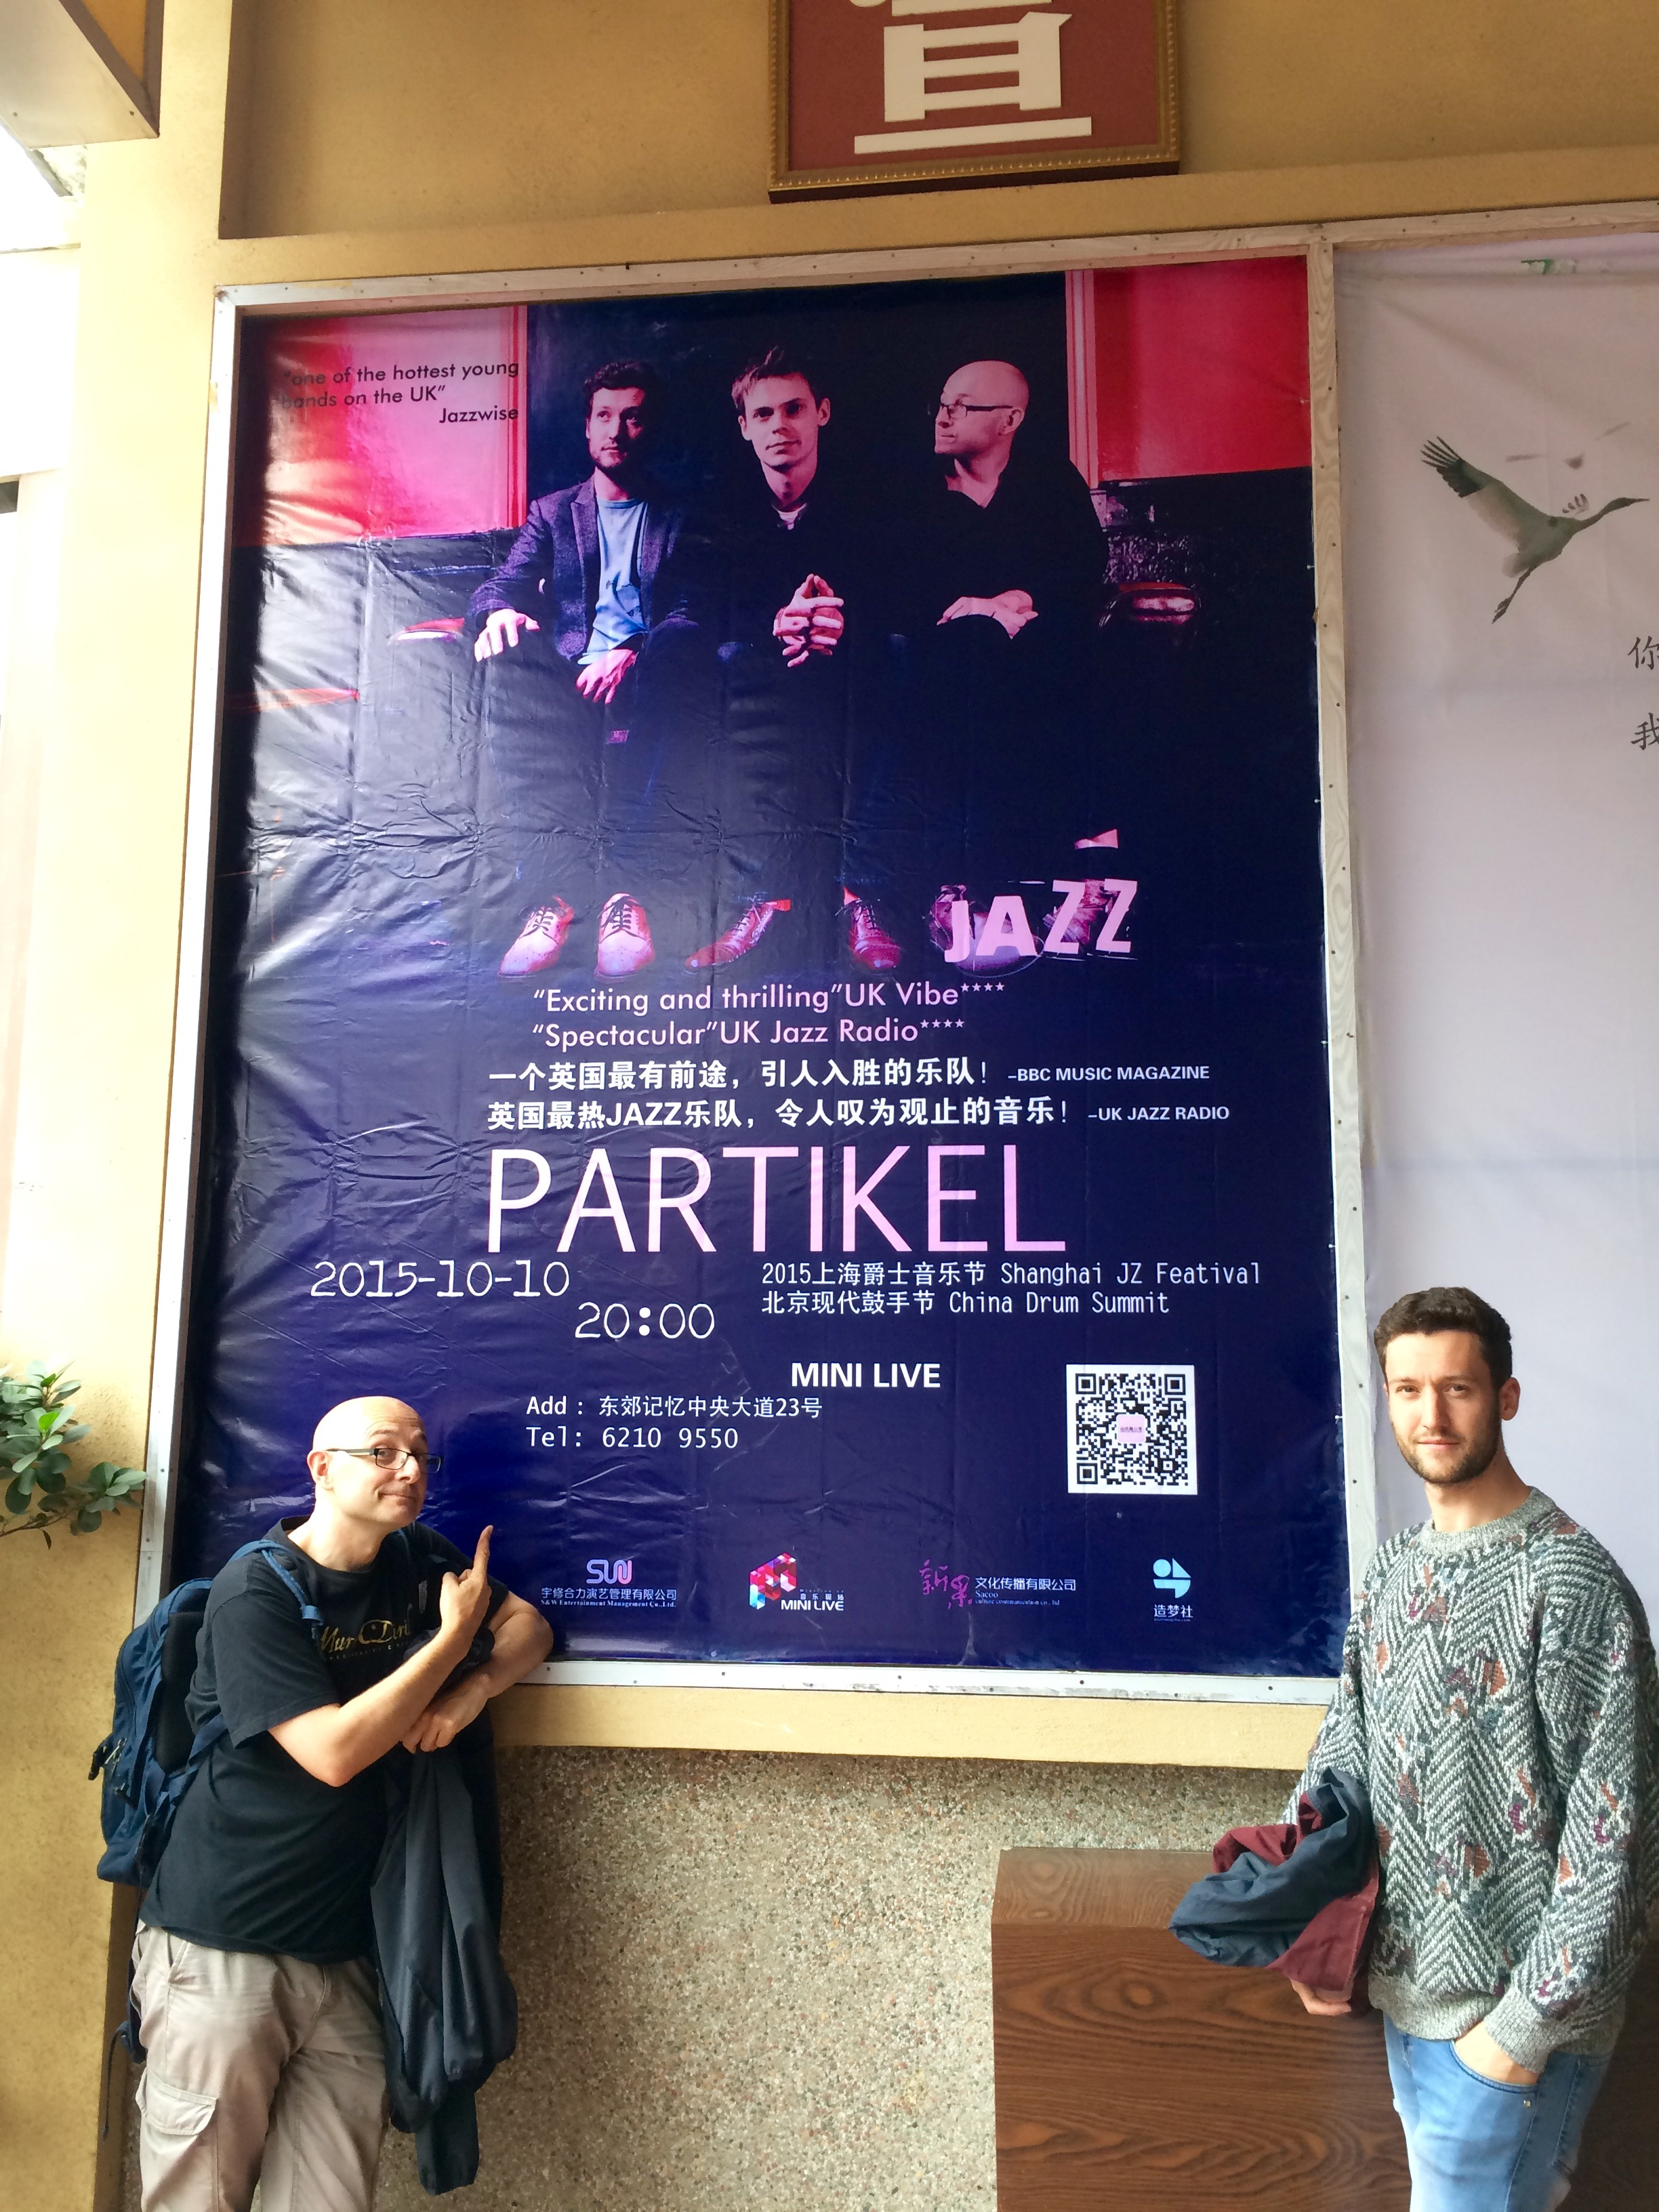 With a Partikel poster in ChengDu